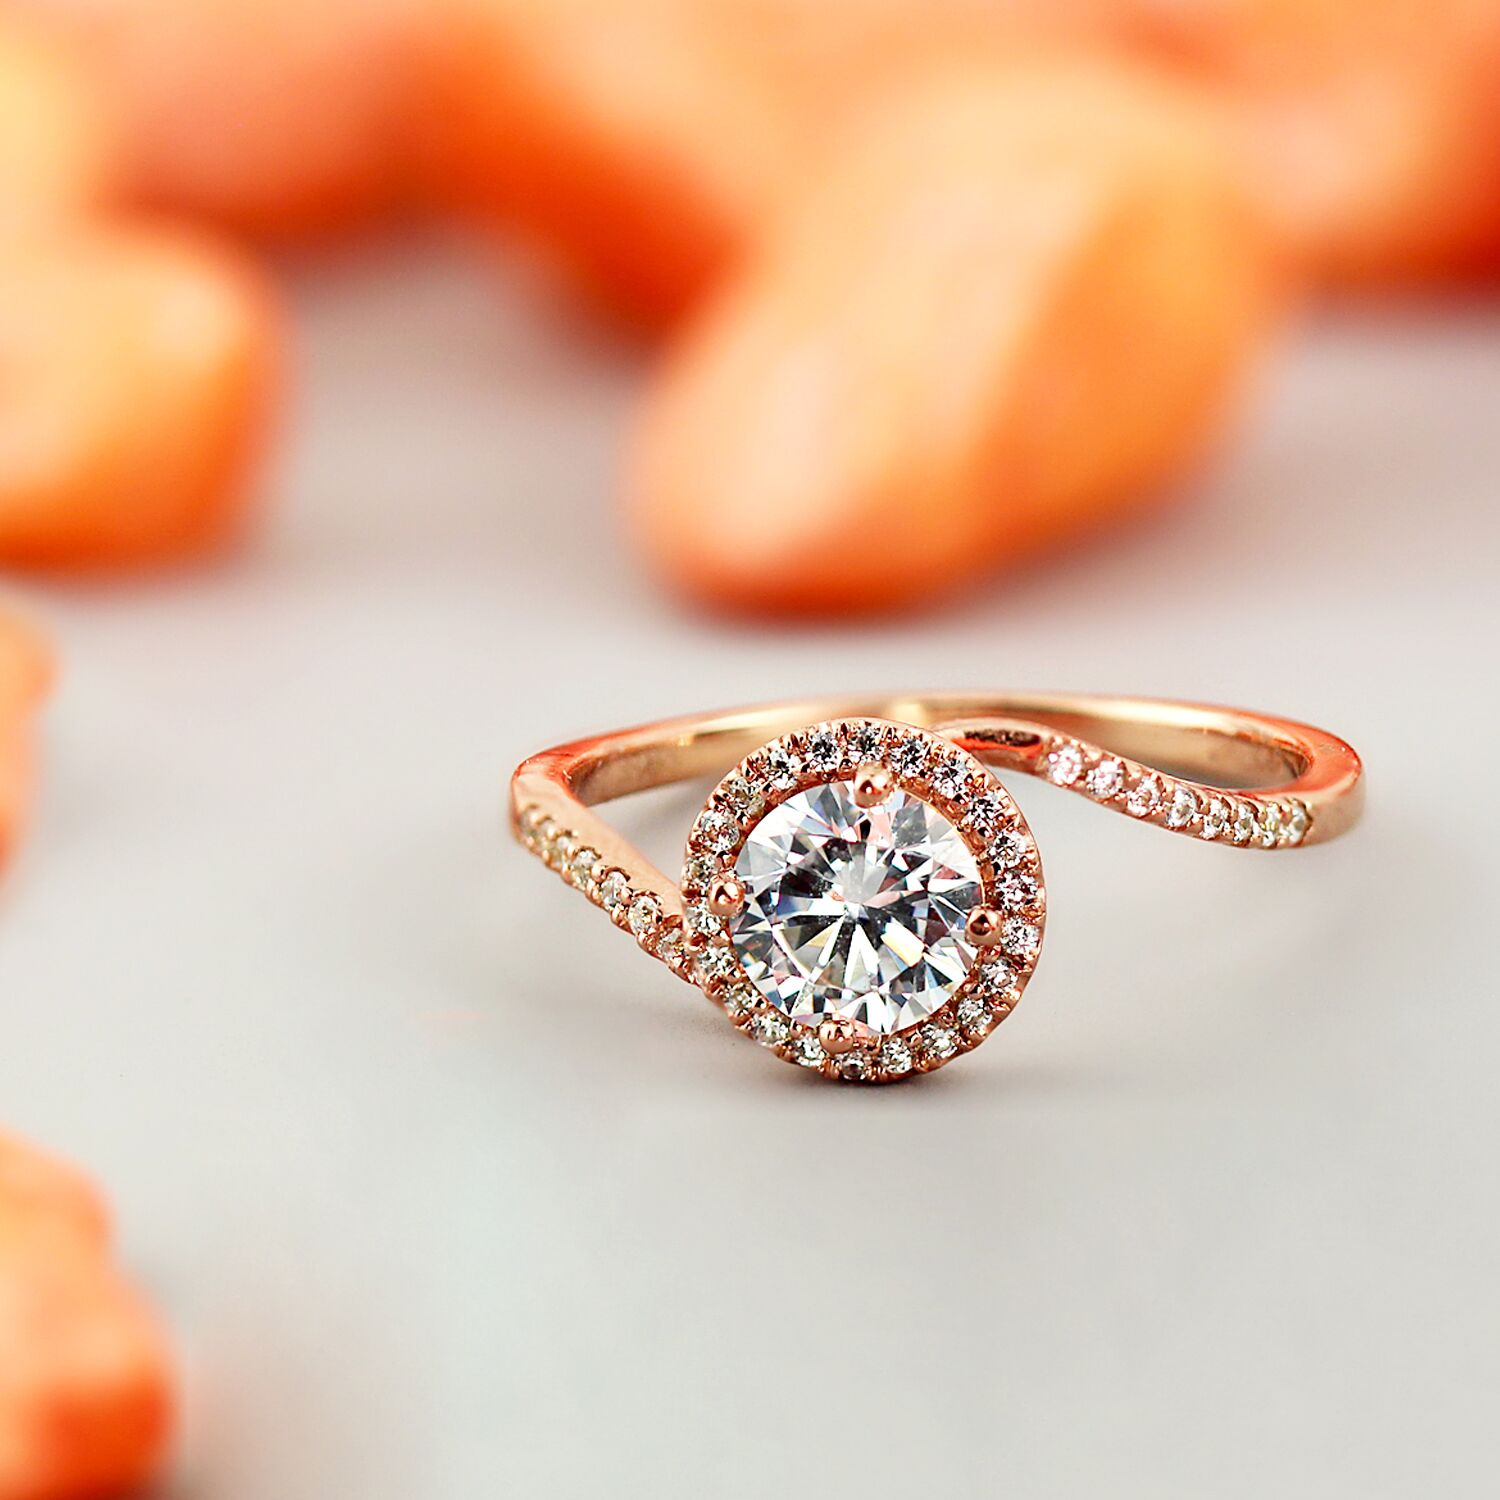 Top Engagement Rings Under $1,500 That Won't Break the Bank